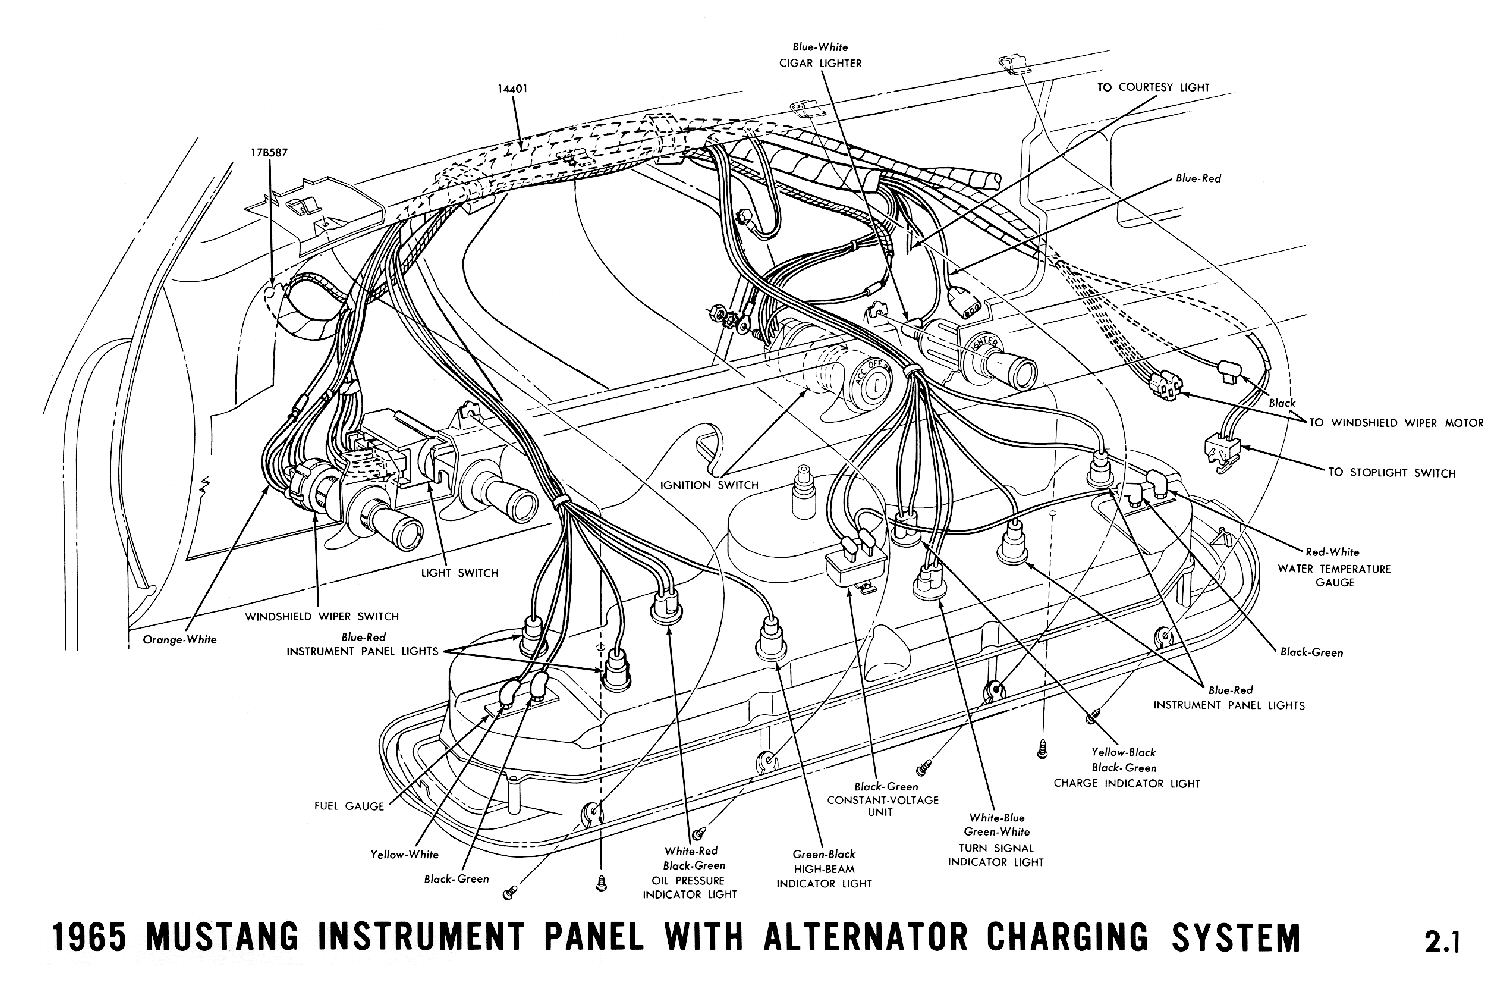 1965a 1965 mustang wiring diagrams average joe restoration